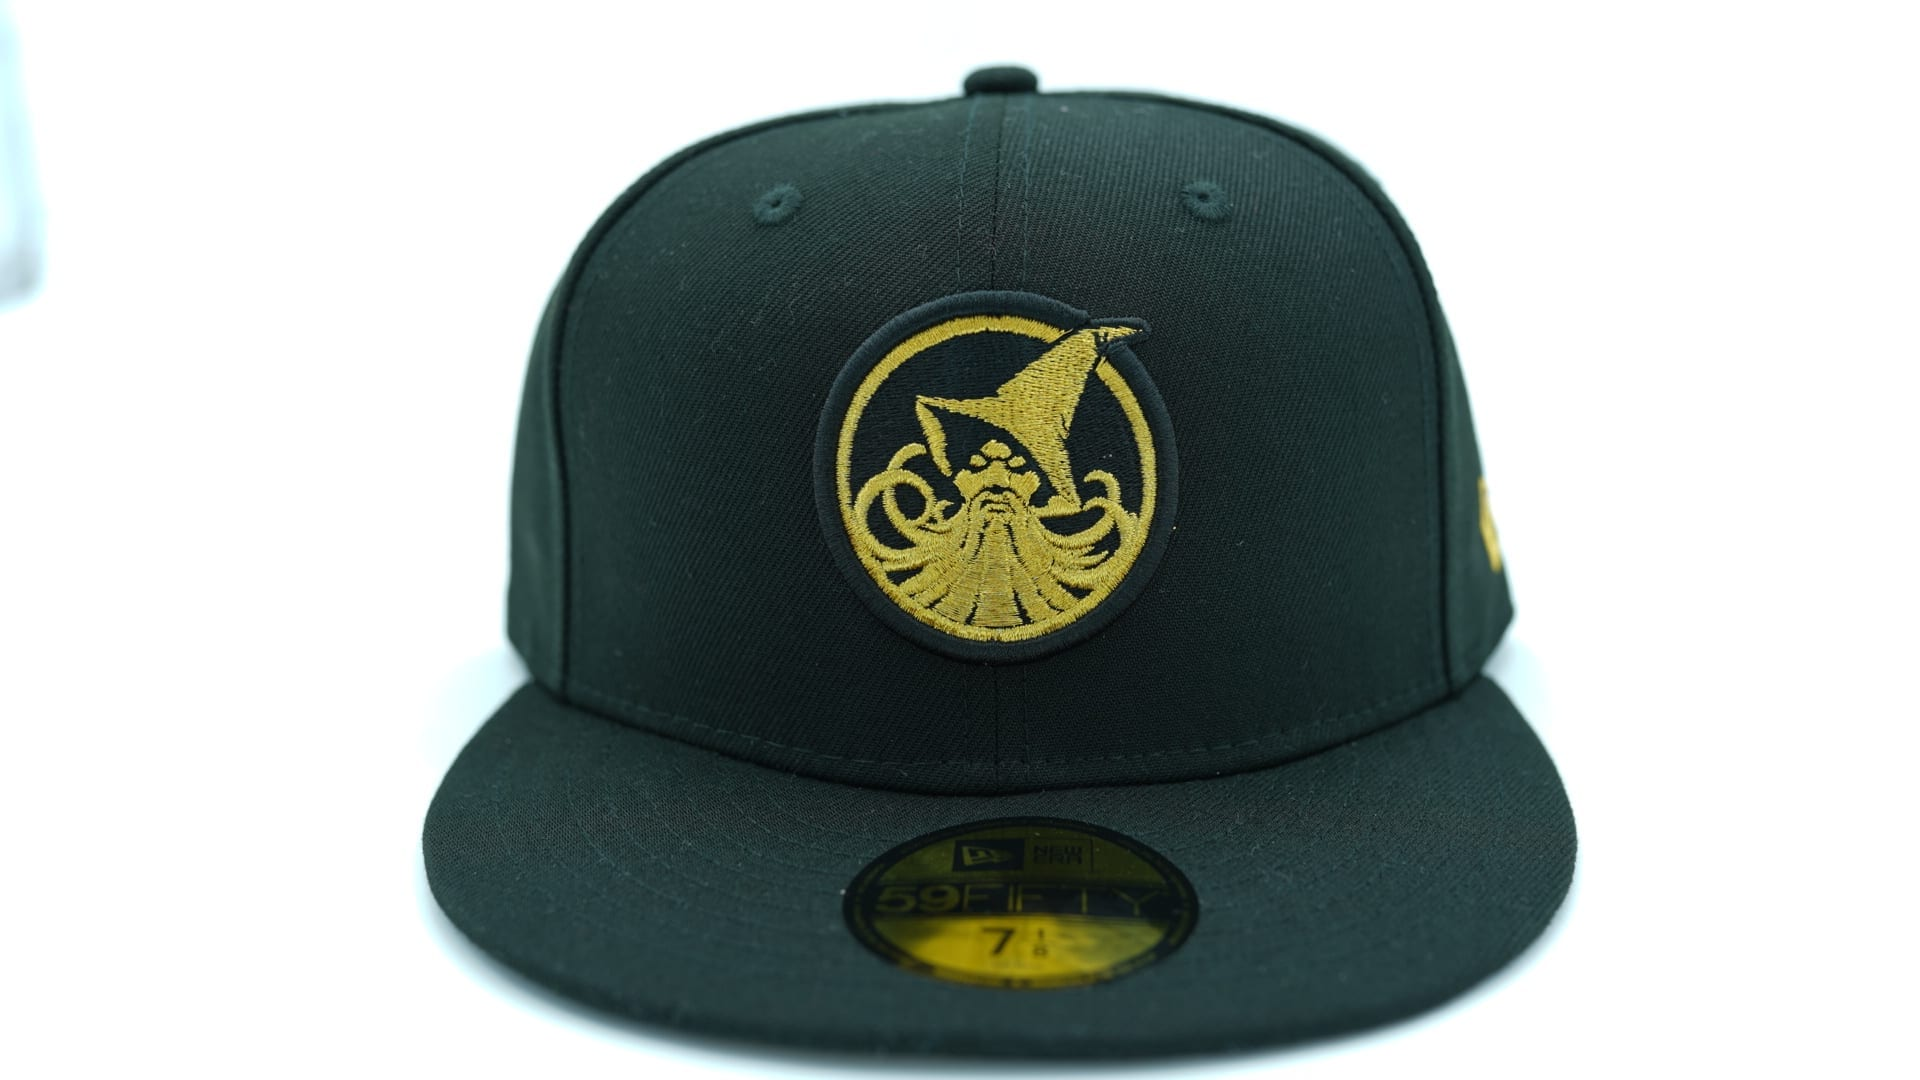 Tonal Black Slasher Magazine Logo 59fifty Fitted Cap by NEW ERA x THRASHER